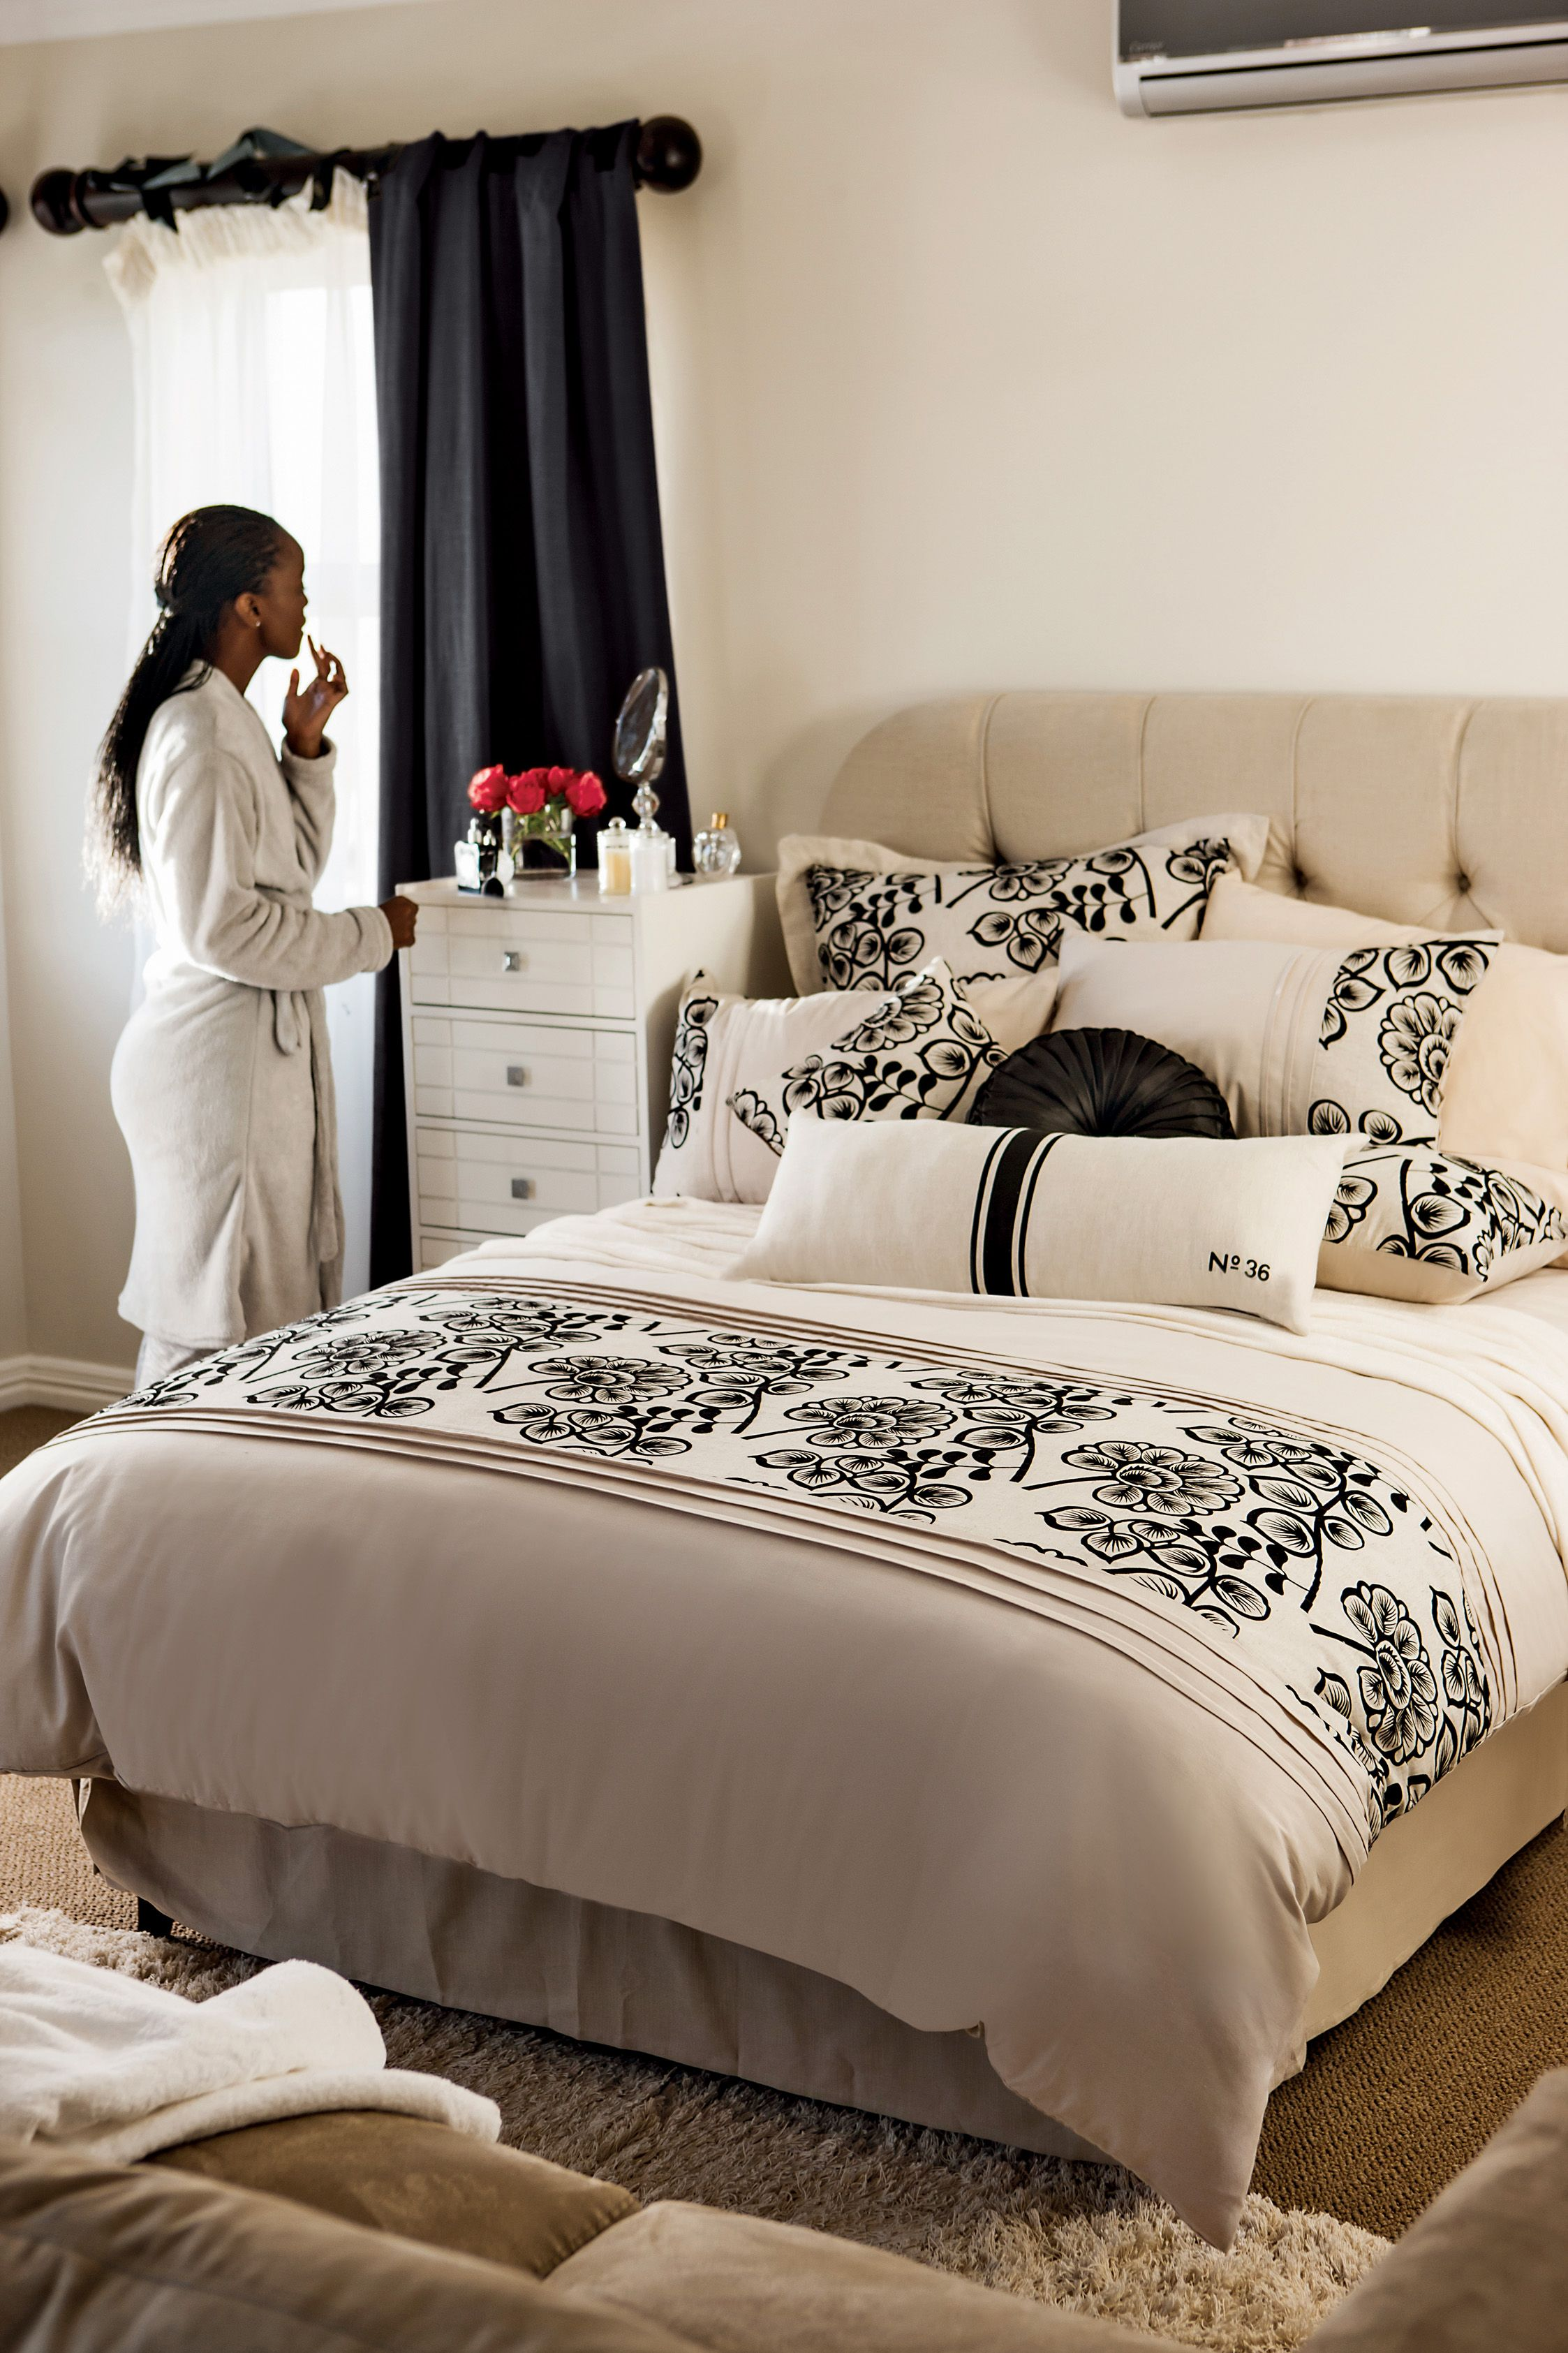 Mr price home bedroom view our range at for House decoration items online